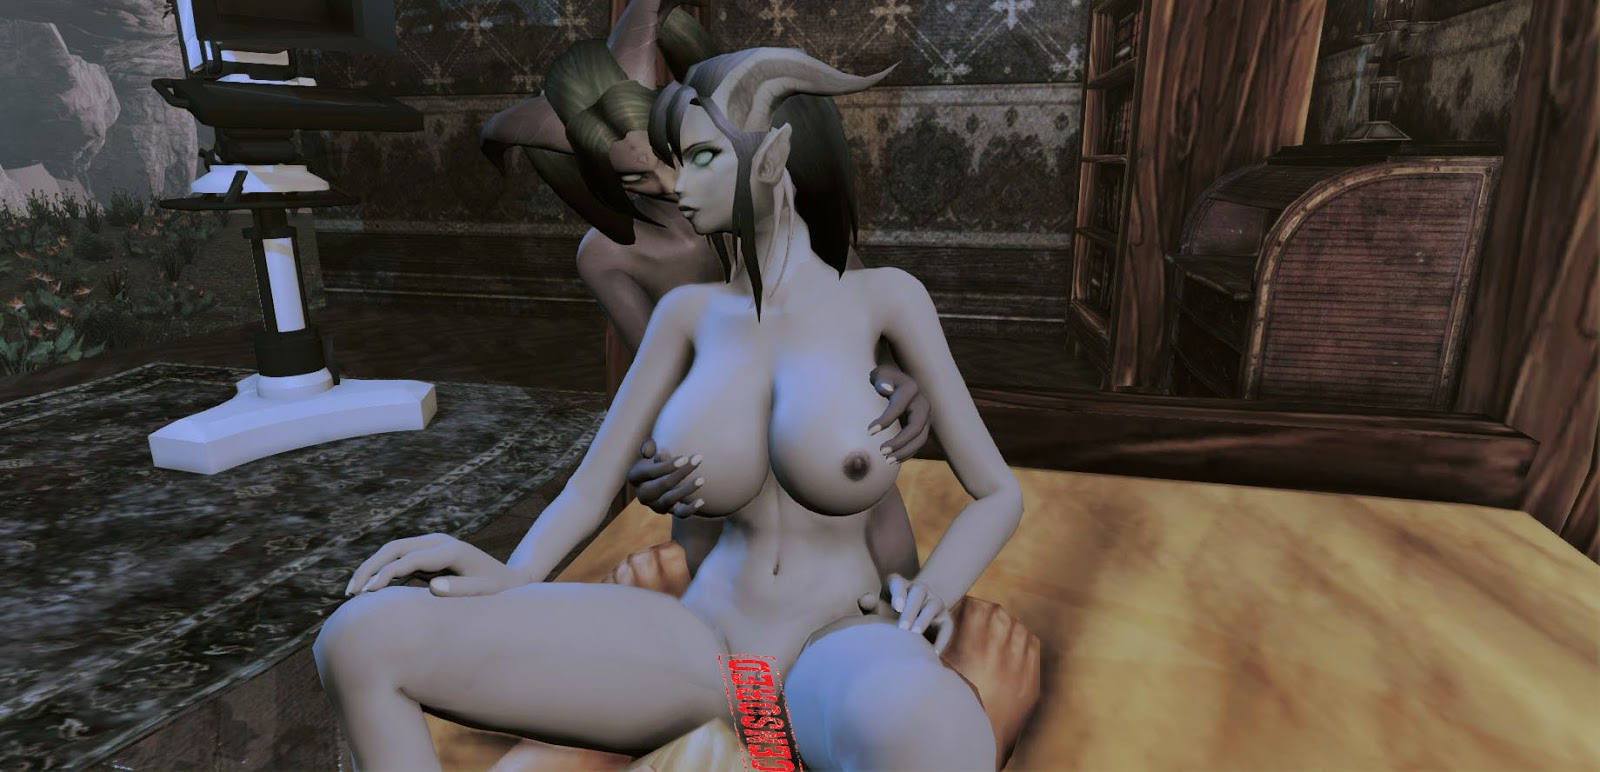 Gnomes from wow xxx scenes